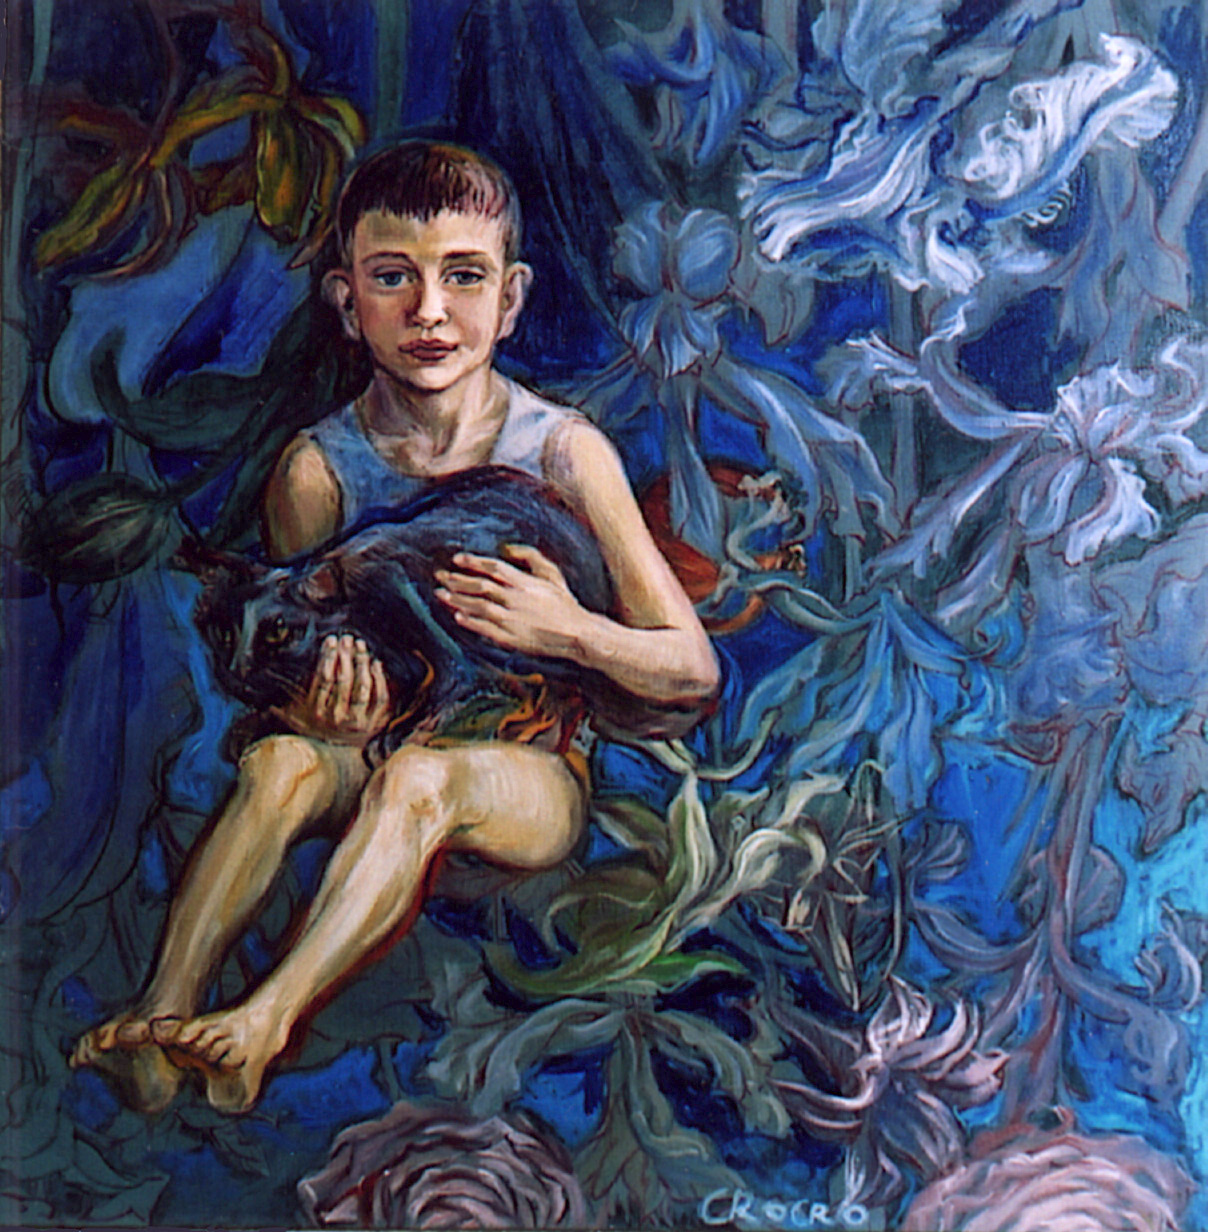 Patrick, 100 x 100 cm, in 2003, Germany